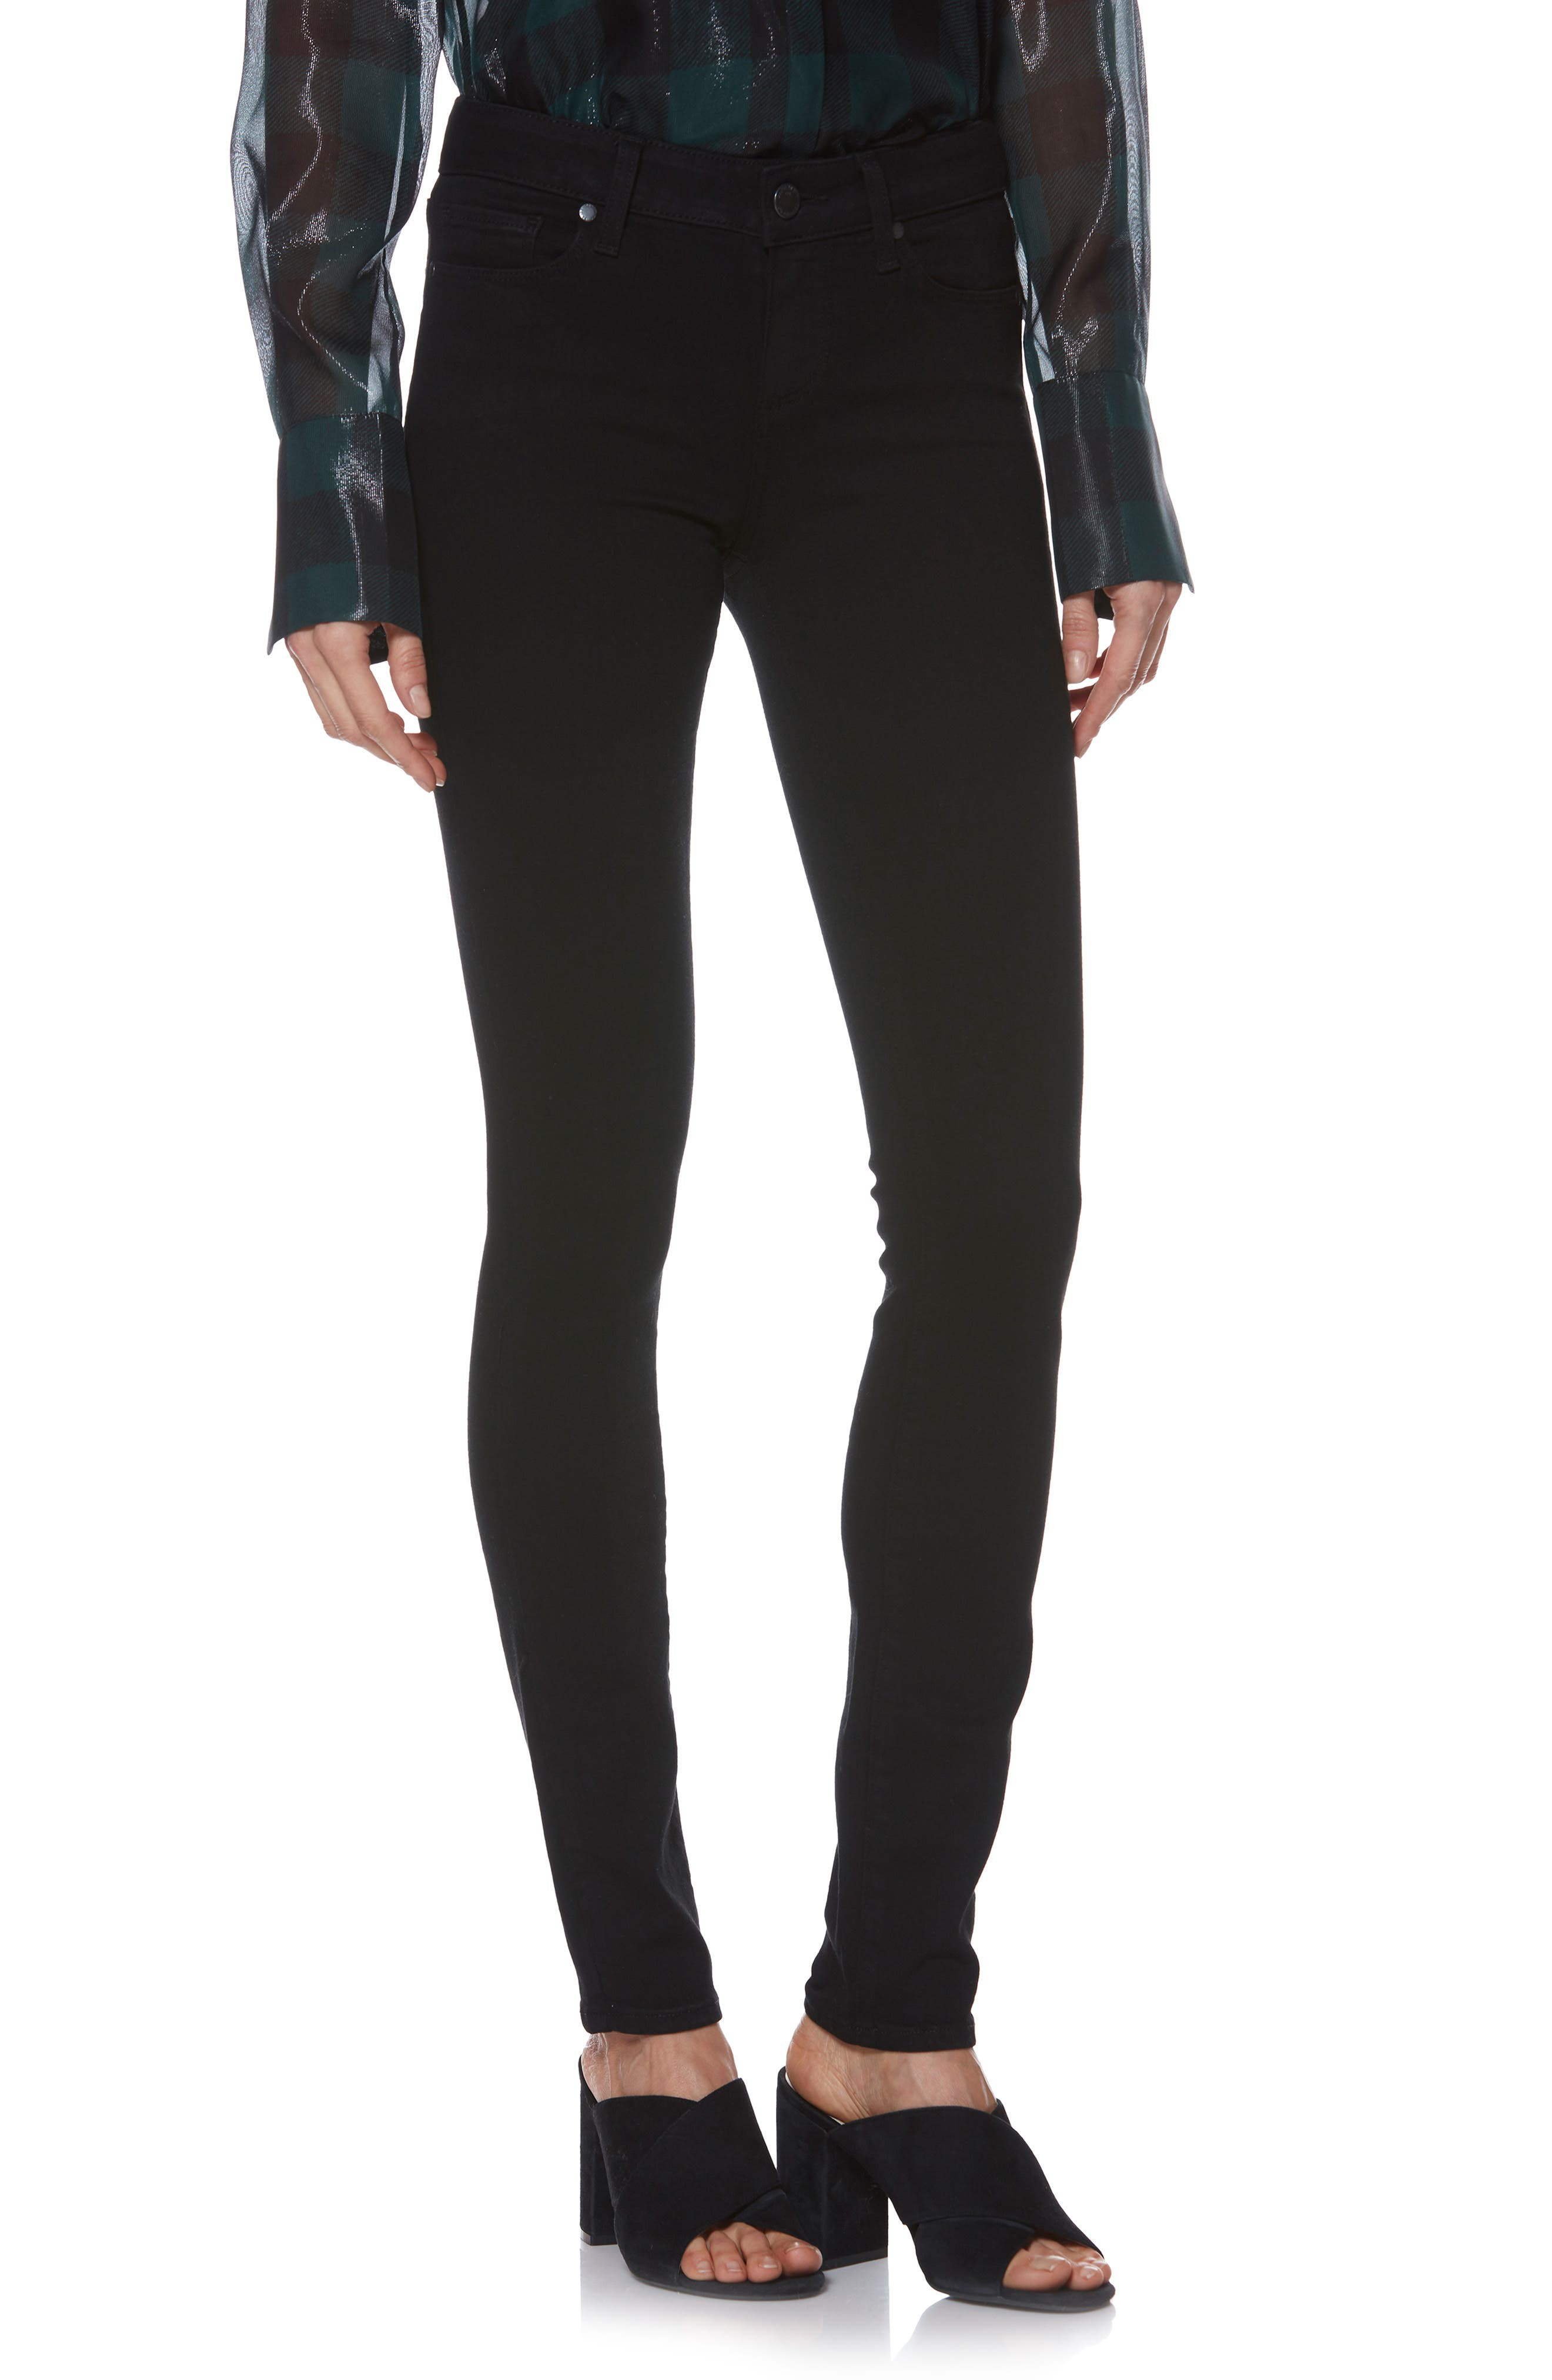 PAIGE, Transcend - Skyline Skinny Jeans, Alternate thumbnail 2, color, BLACK SHADOW